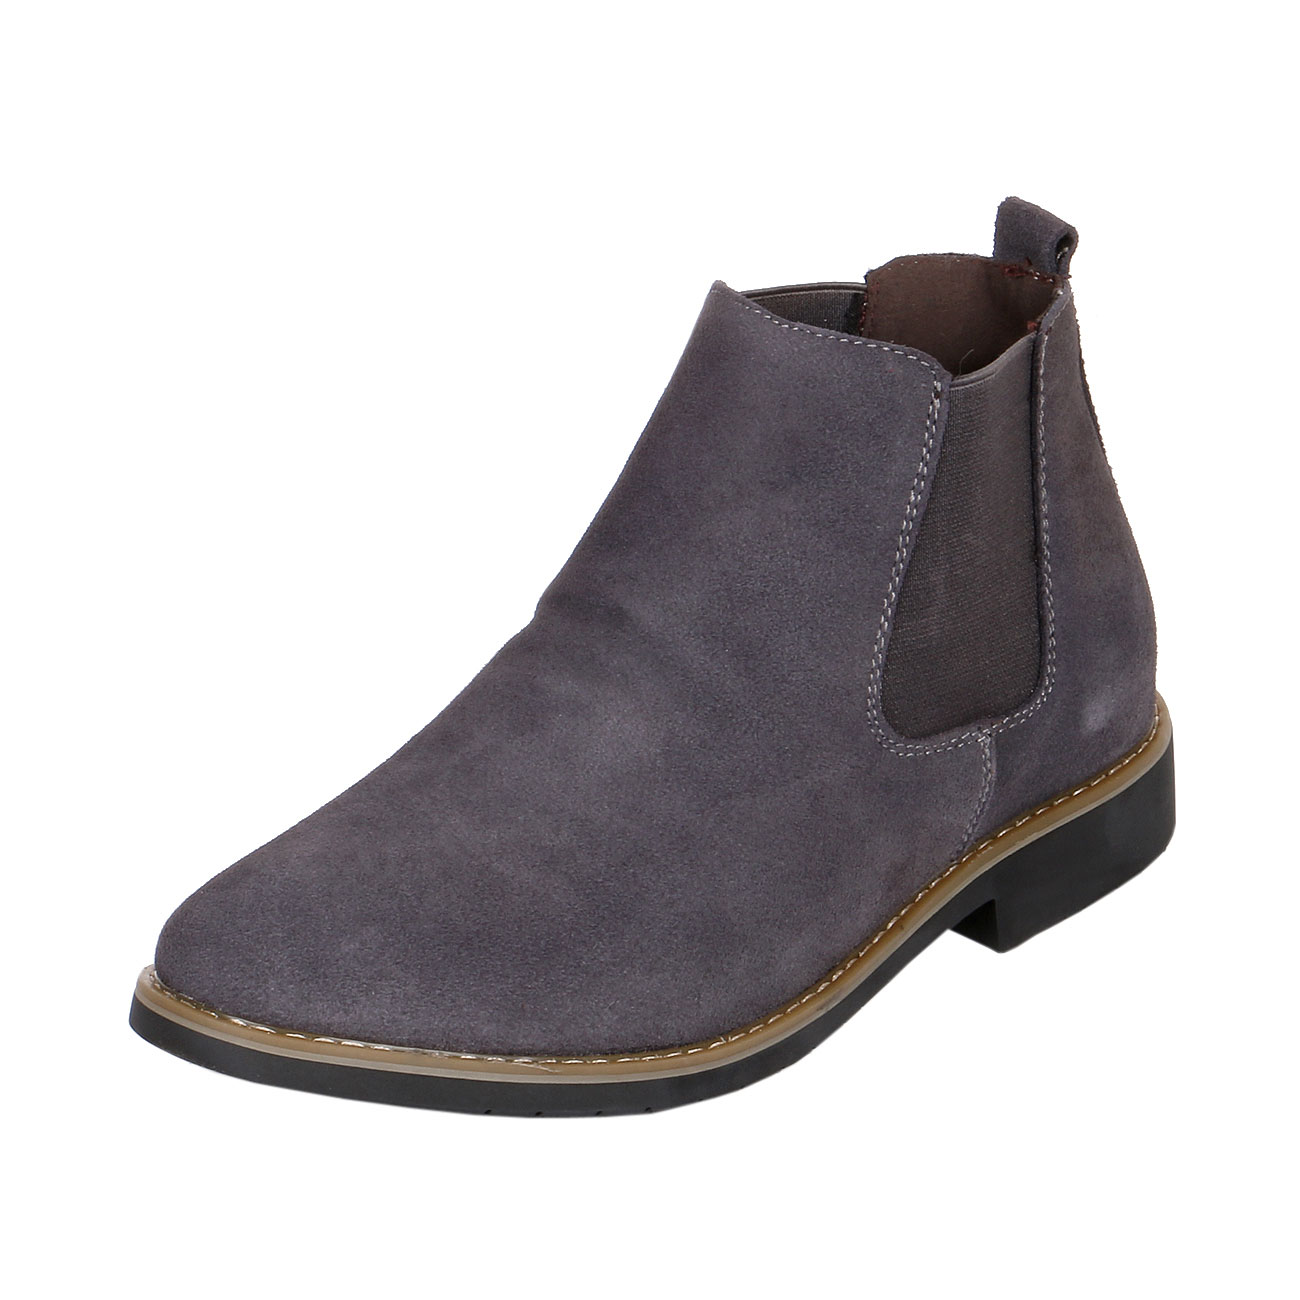 Height Elevator Boots Suede Chelsea Style-view1